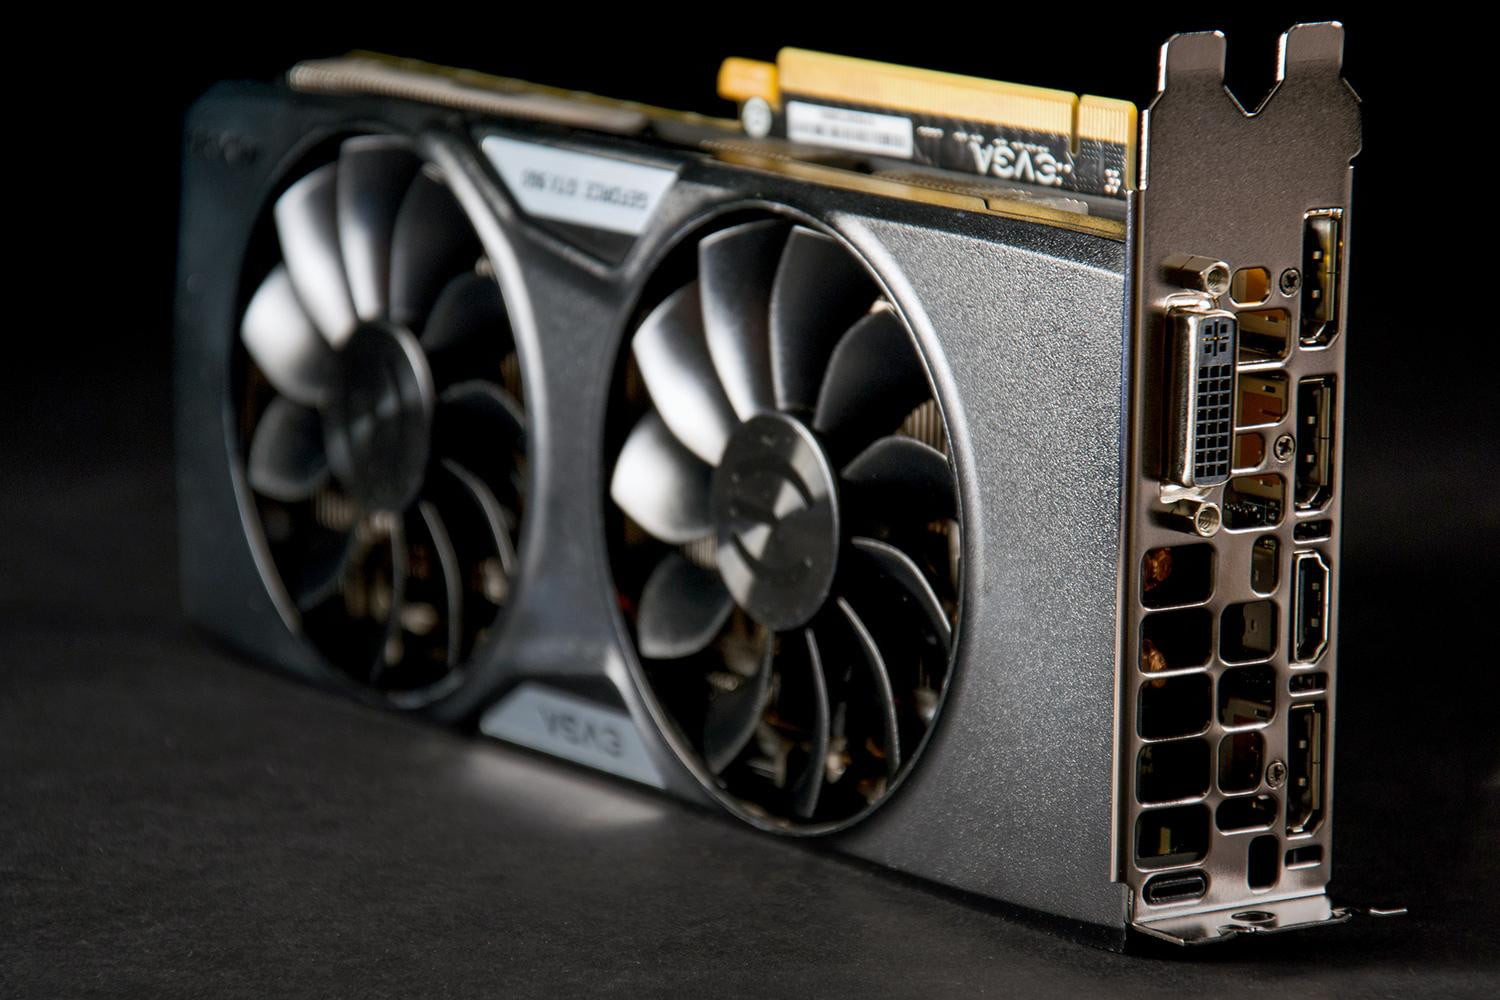 How to increase the performance of a video card